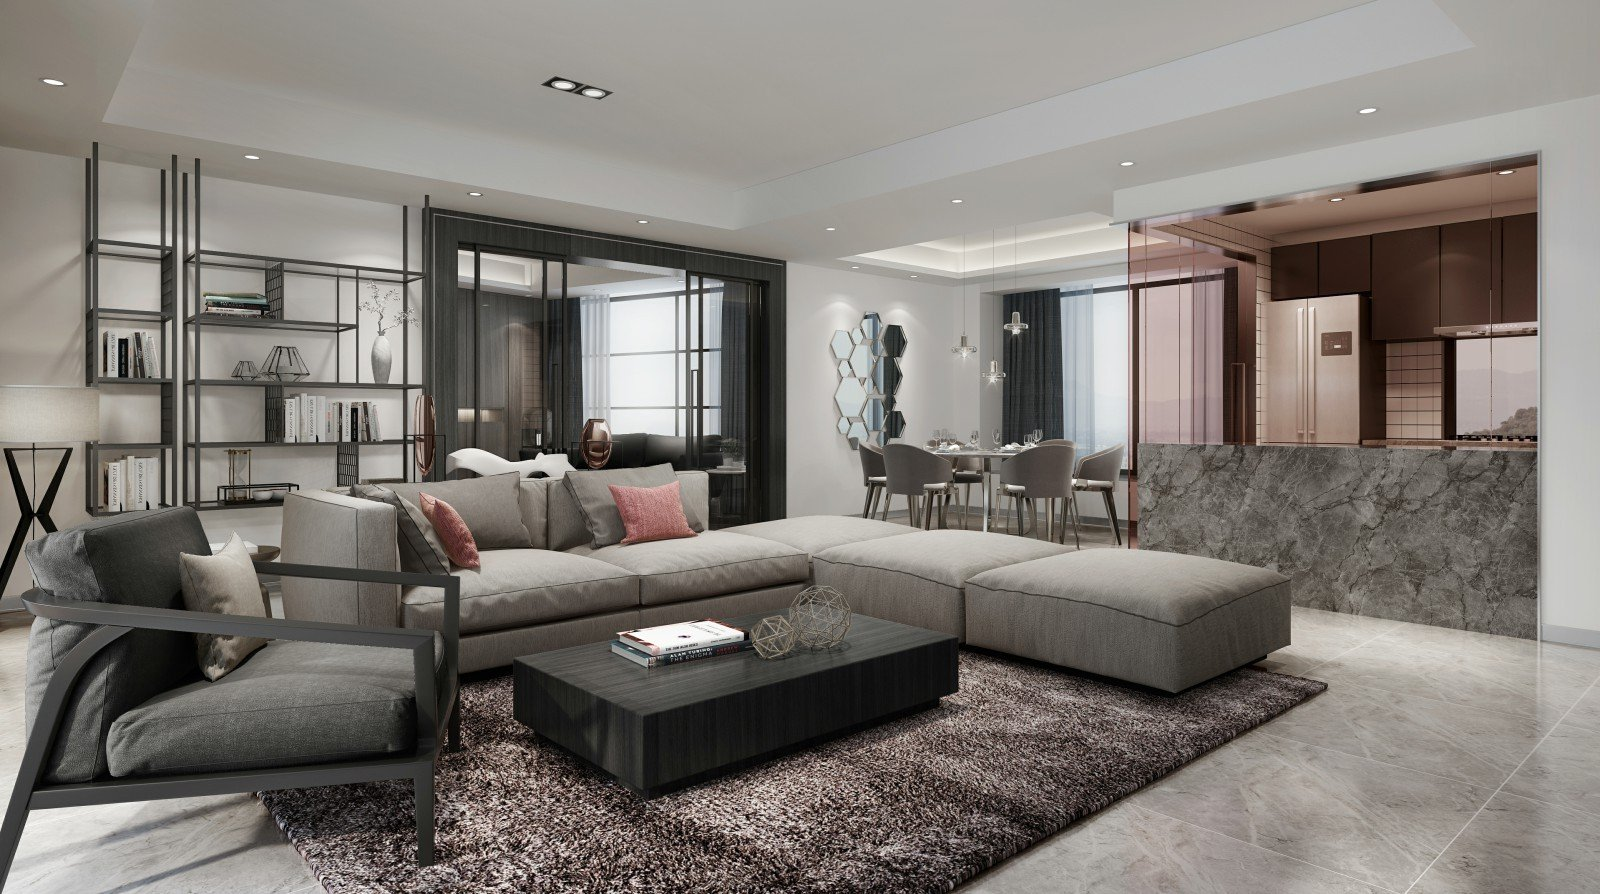 Architectural_Visualization_3D_Rendering_AIMIRCG.COM_101202